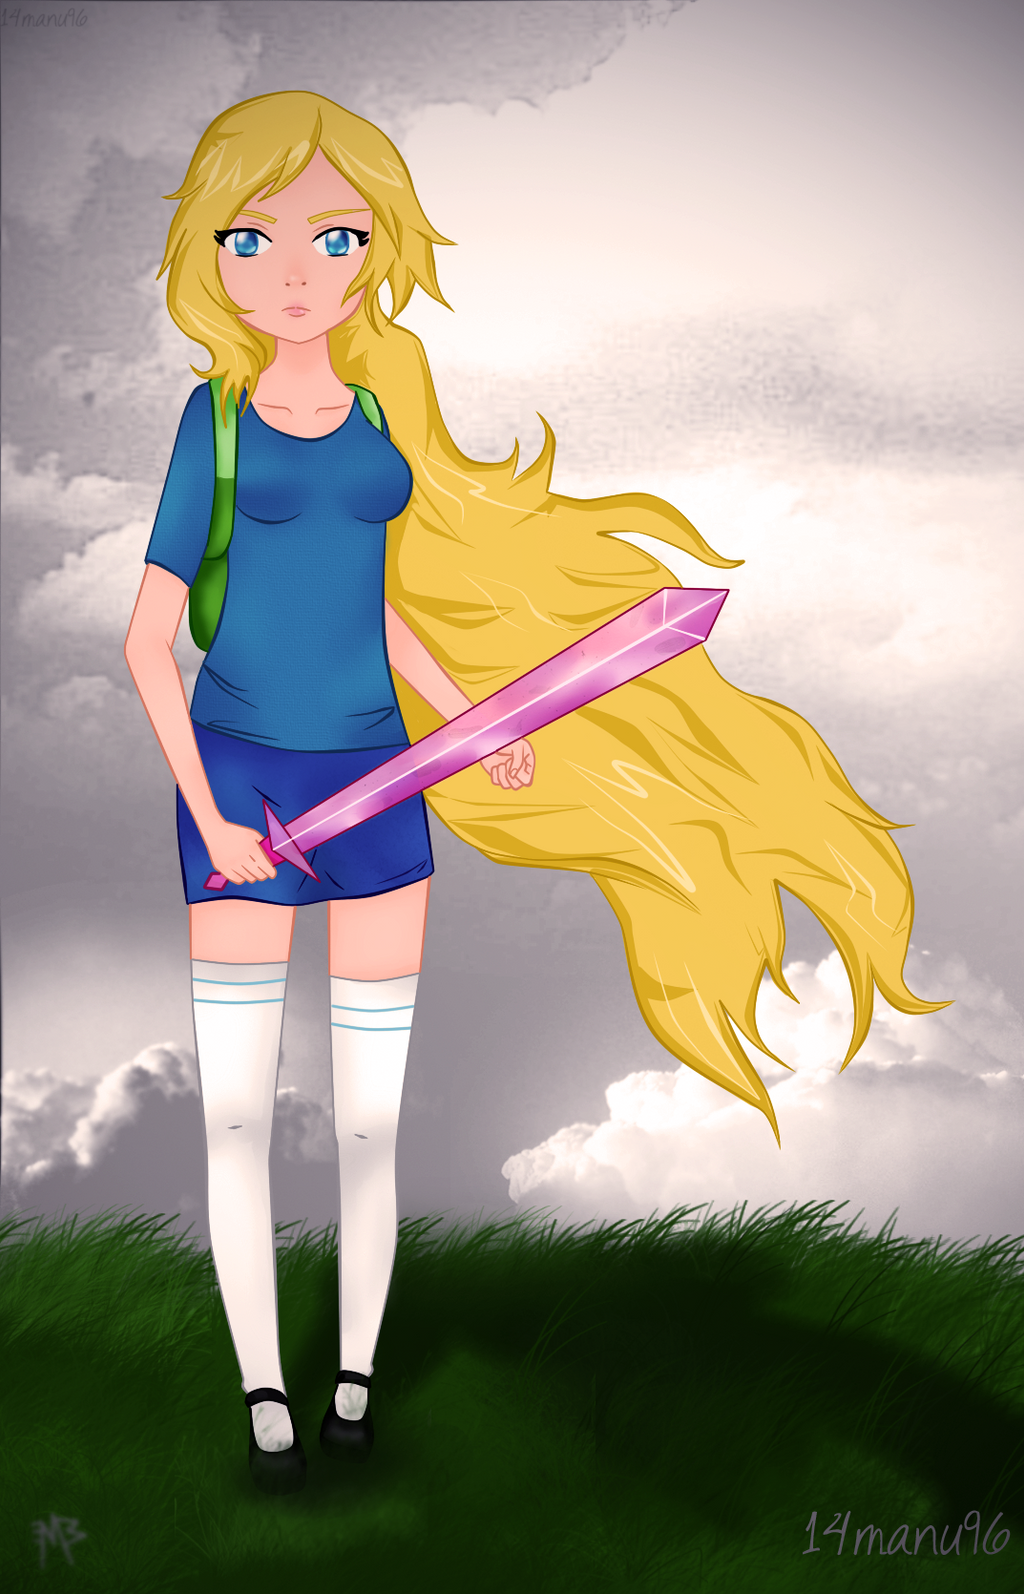 Fionna the Human :3 by 14manu96